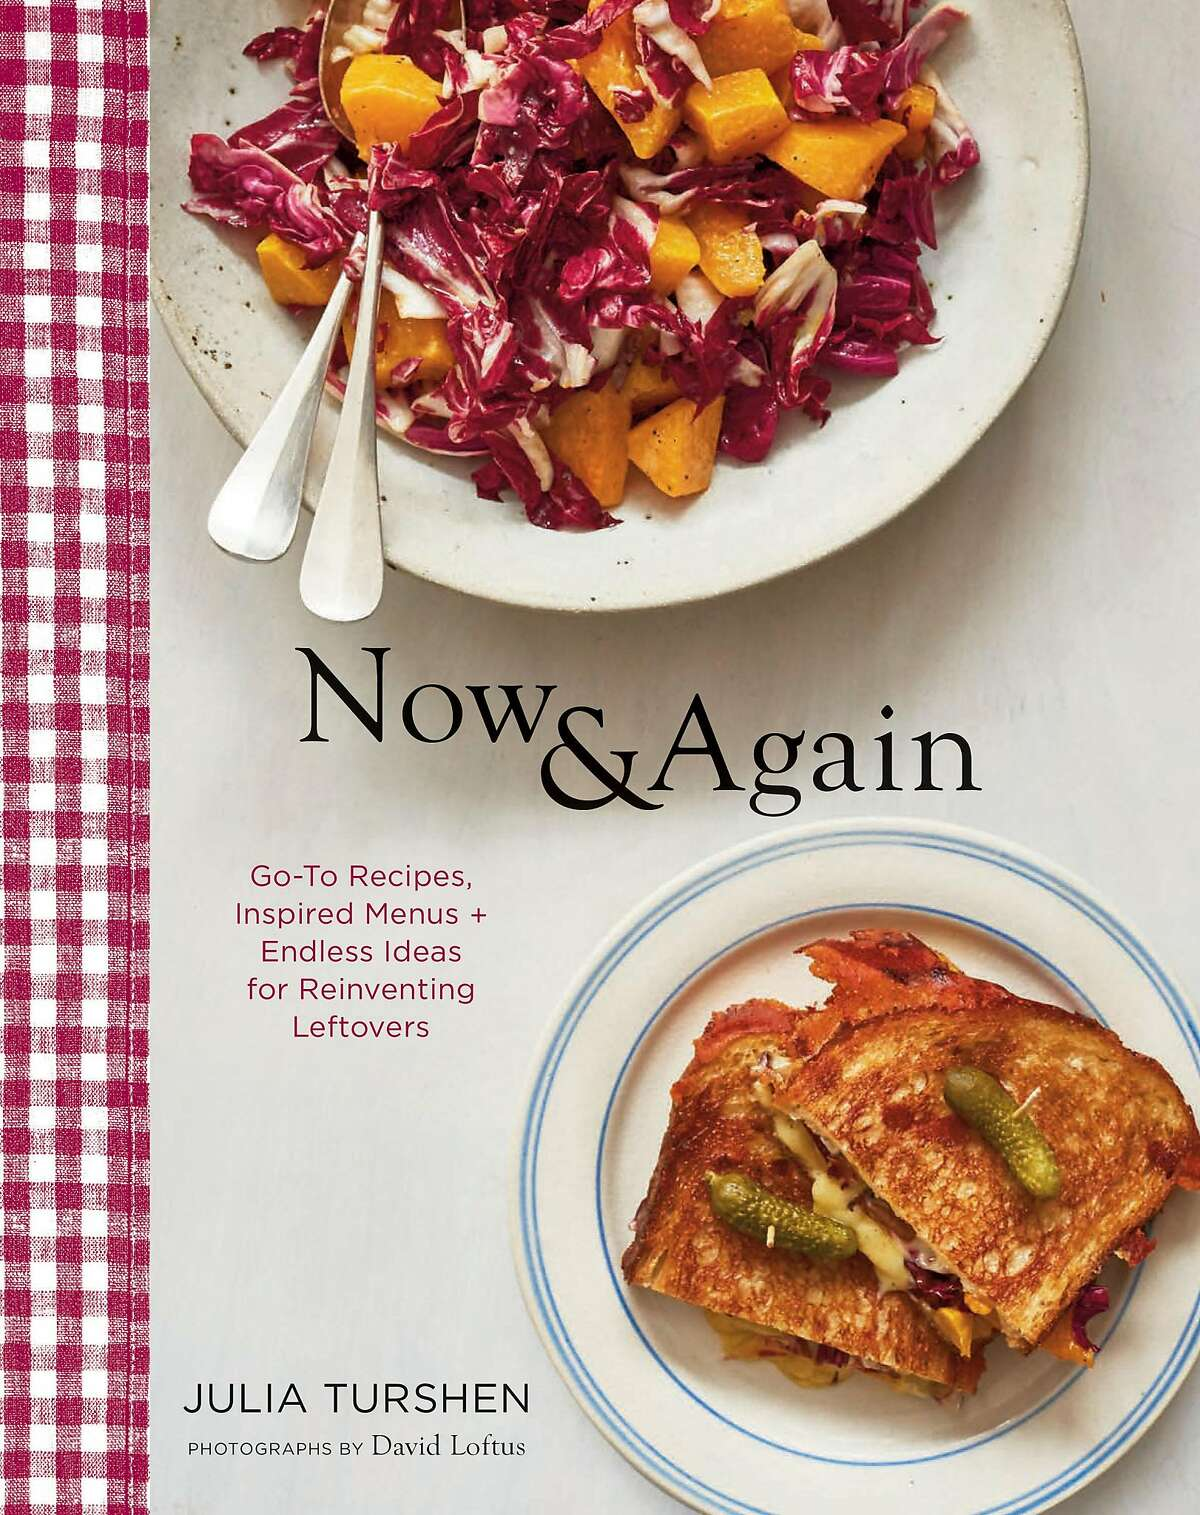 """""""Now & Again: Go-To Recipes, Inspired Menus + Endless Ideas for Reinventing Leftovers,"""" by Julia Turshen (Chronicle Books; $35)"""